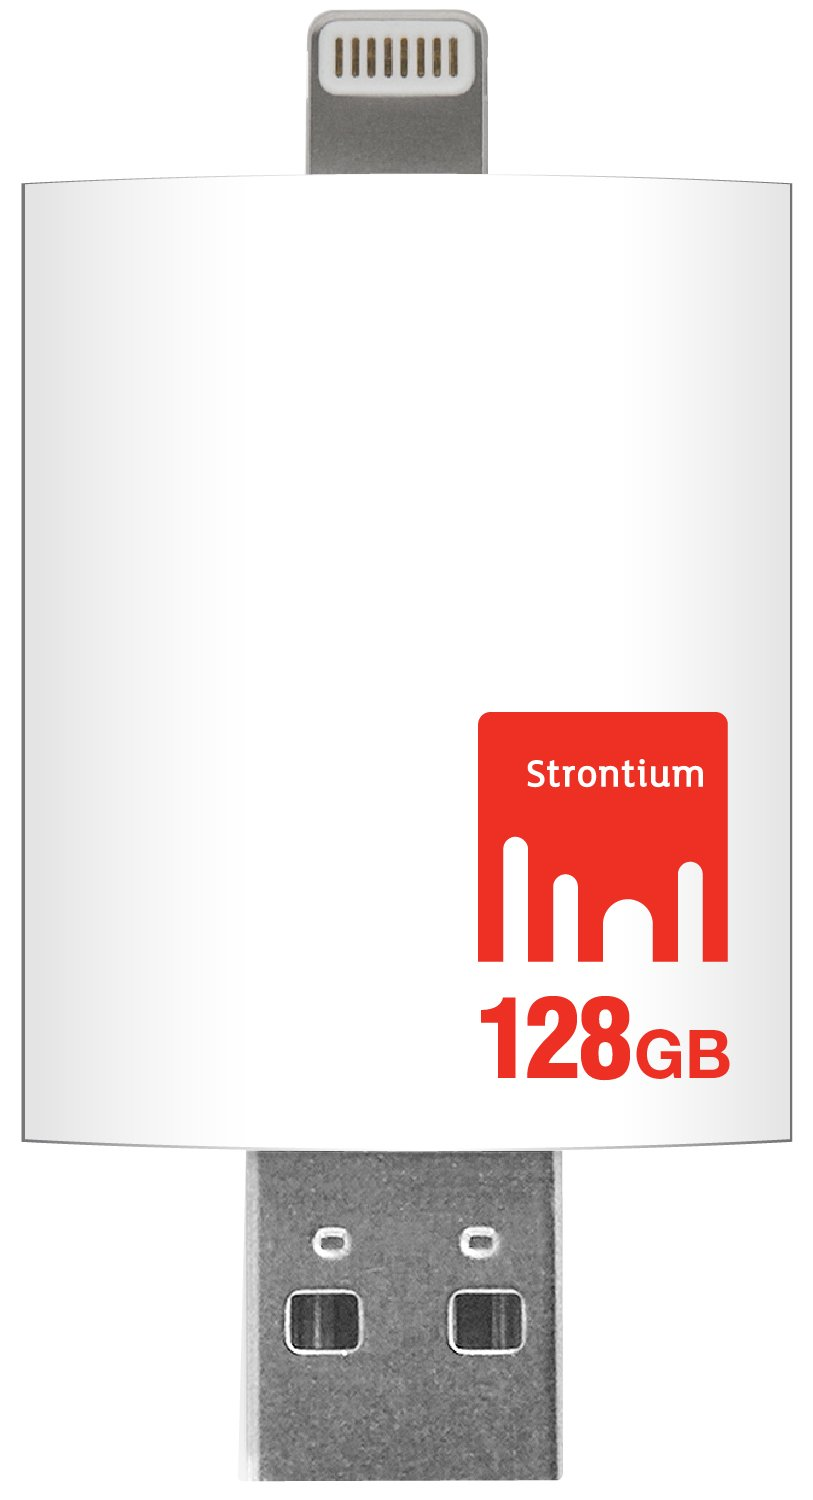 Strontium Nitro iDrive 128GB USB 3.0 with Lightning connector for iPads, iPhones and Computers - SR128GWHOTGAZ